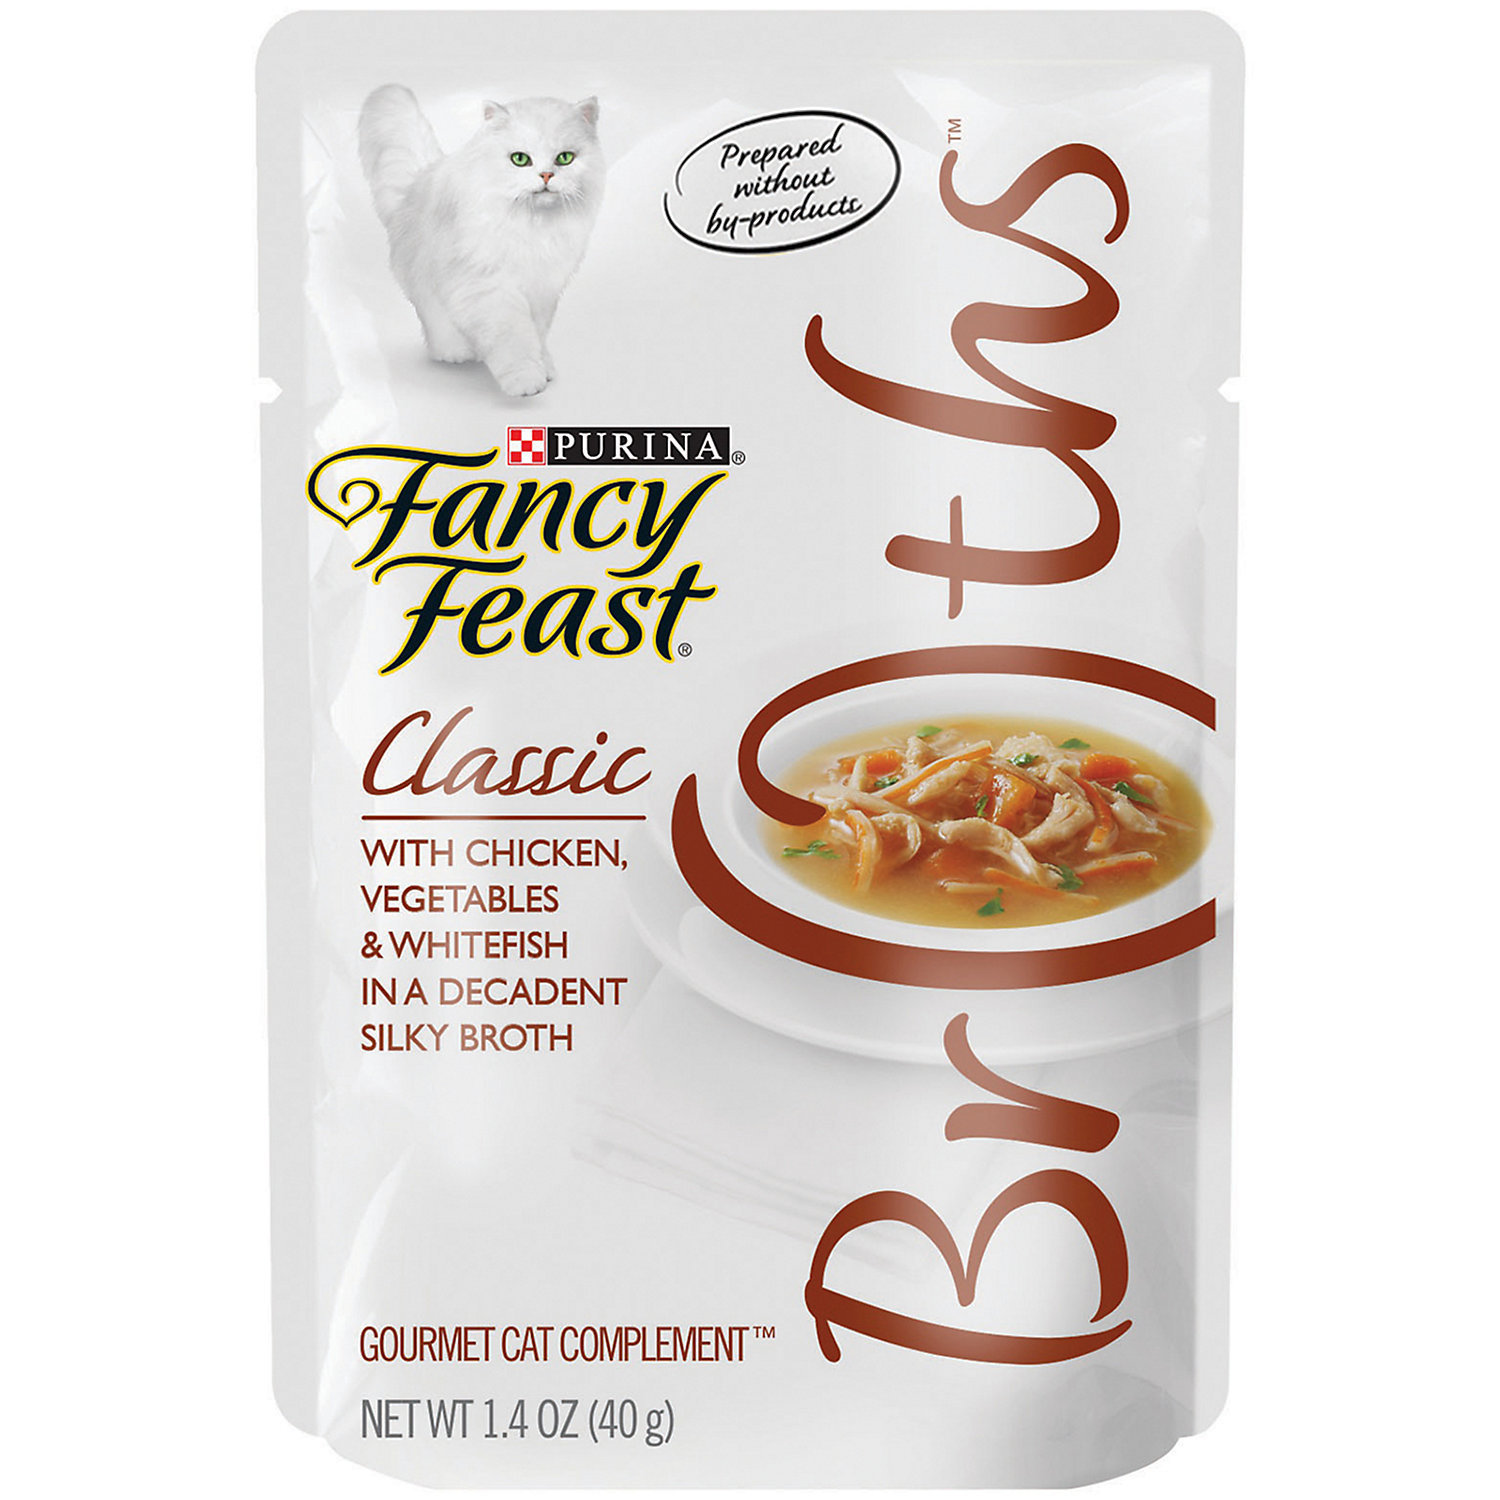 Fancy Feast Broths Classic Chicken, Vegetables & Whitefish Cat Food Complement,(9/18) (A.K4)